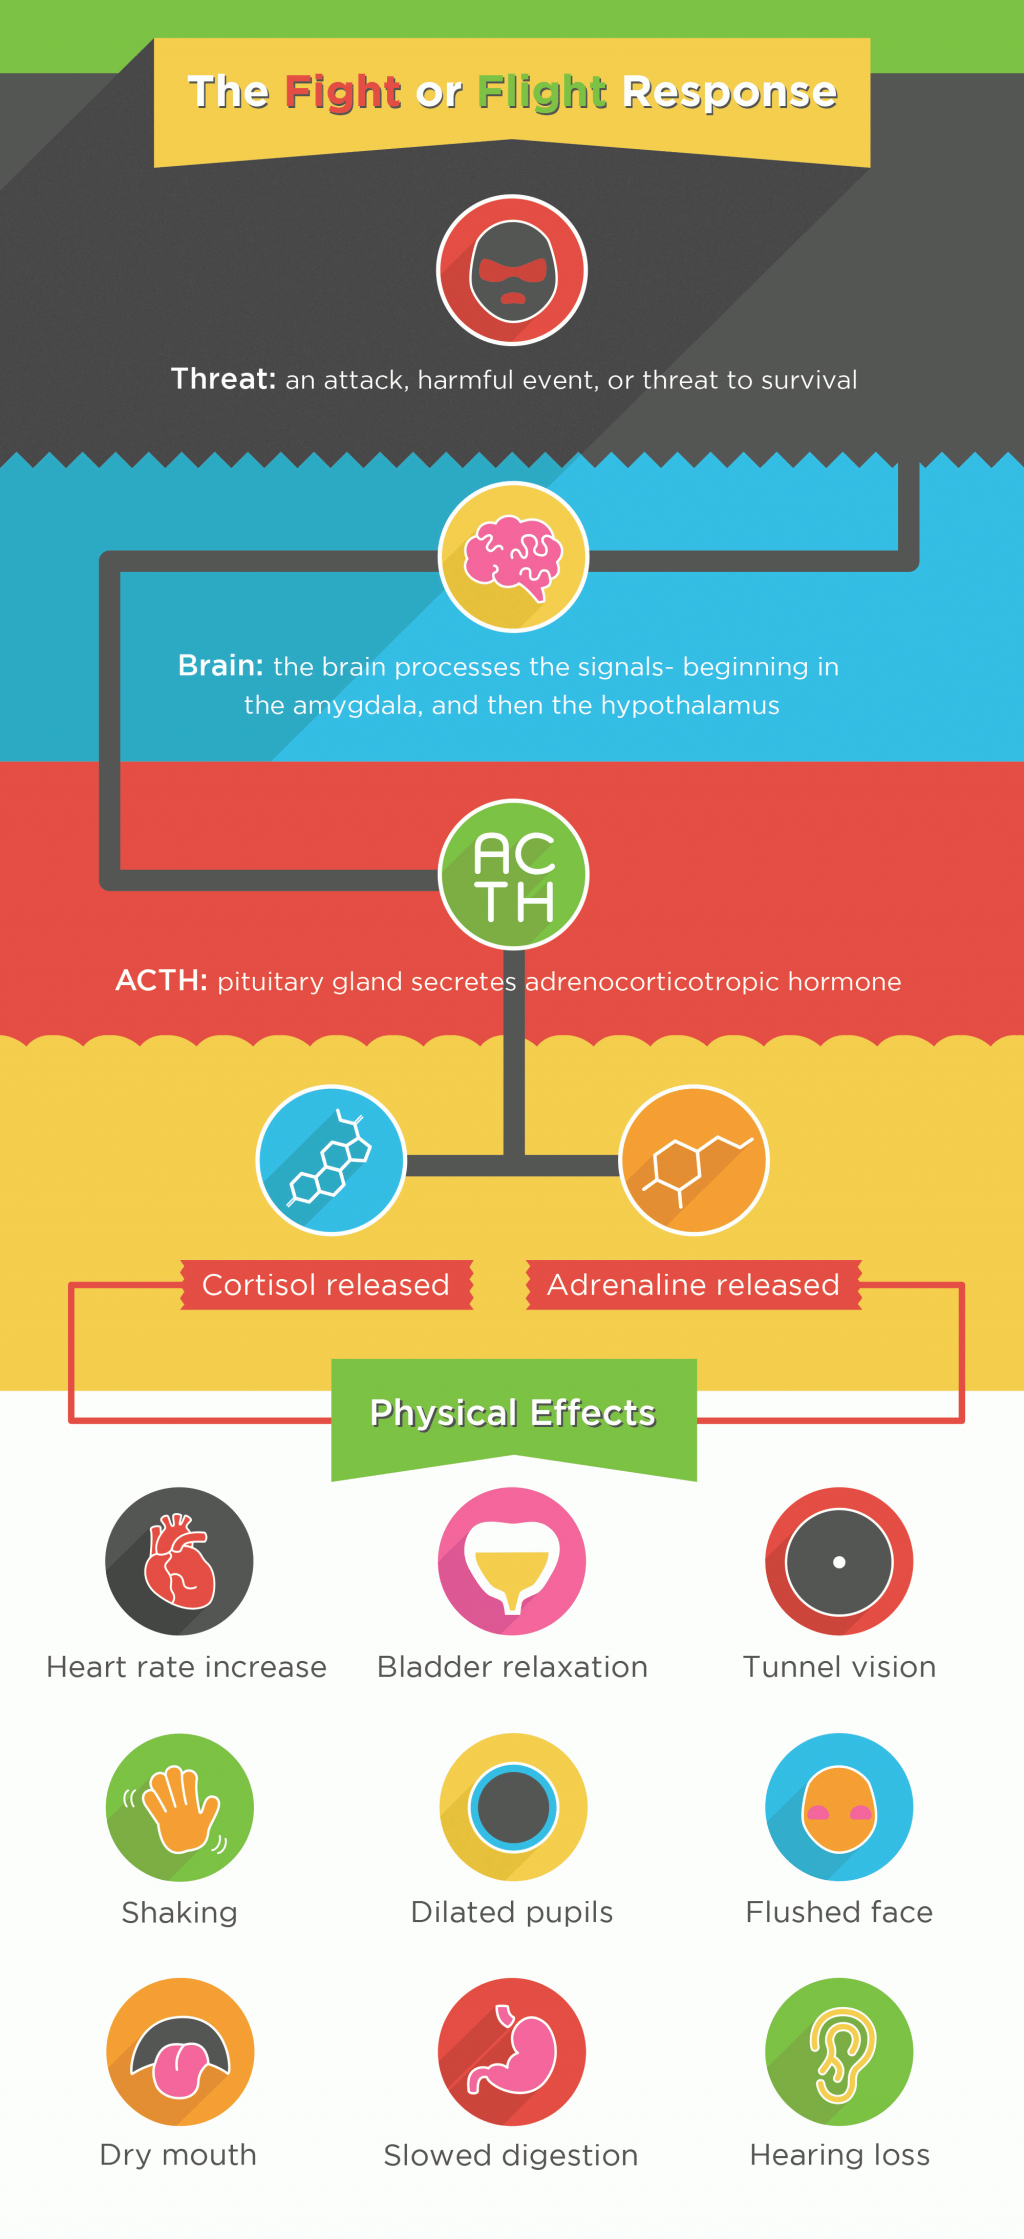 An infographic showing the fight or flight response, the body's response to stress